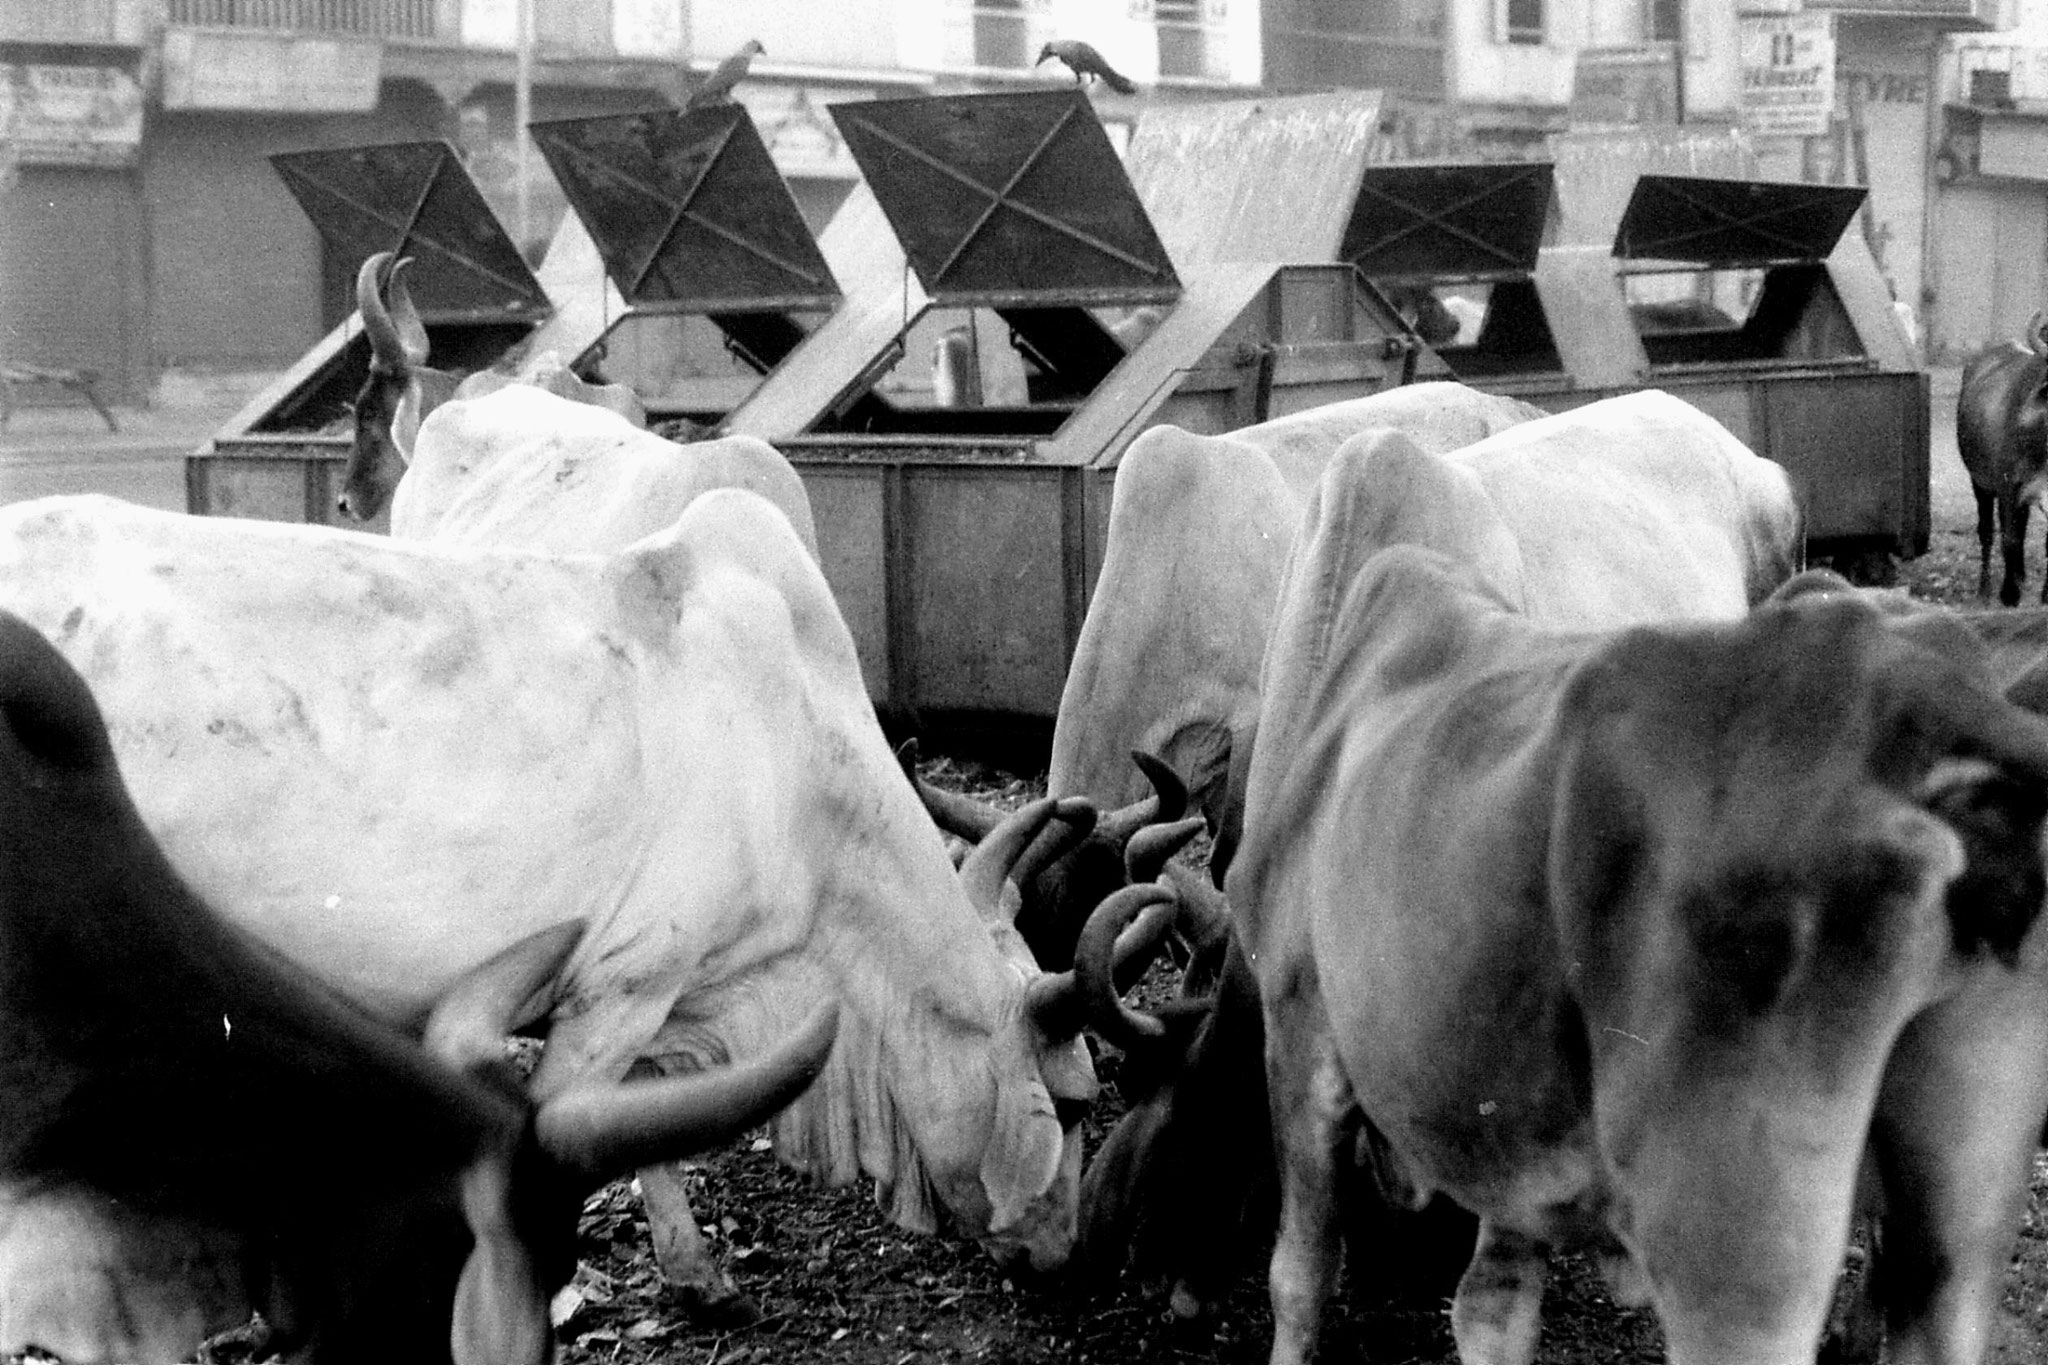 10/12/1989: 21: Ahmedabad cows fighting over rubbish